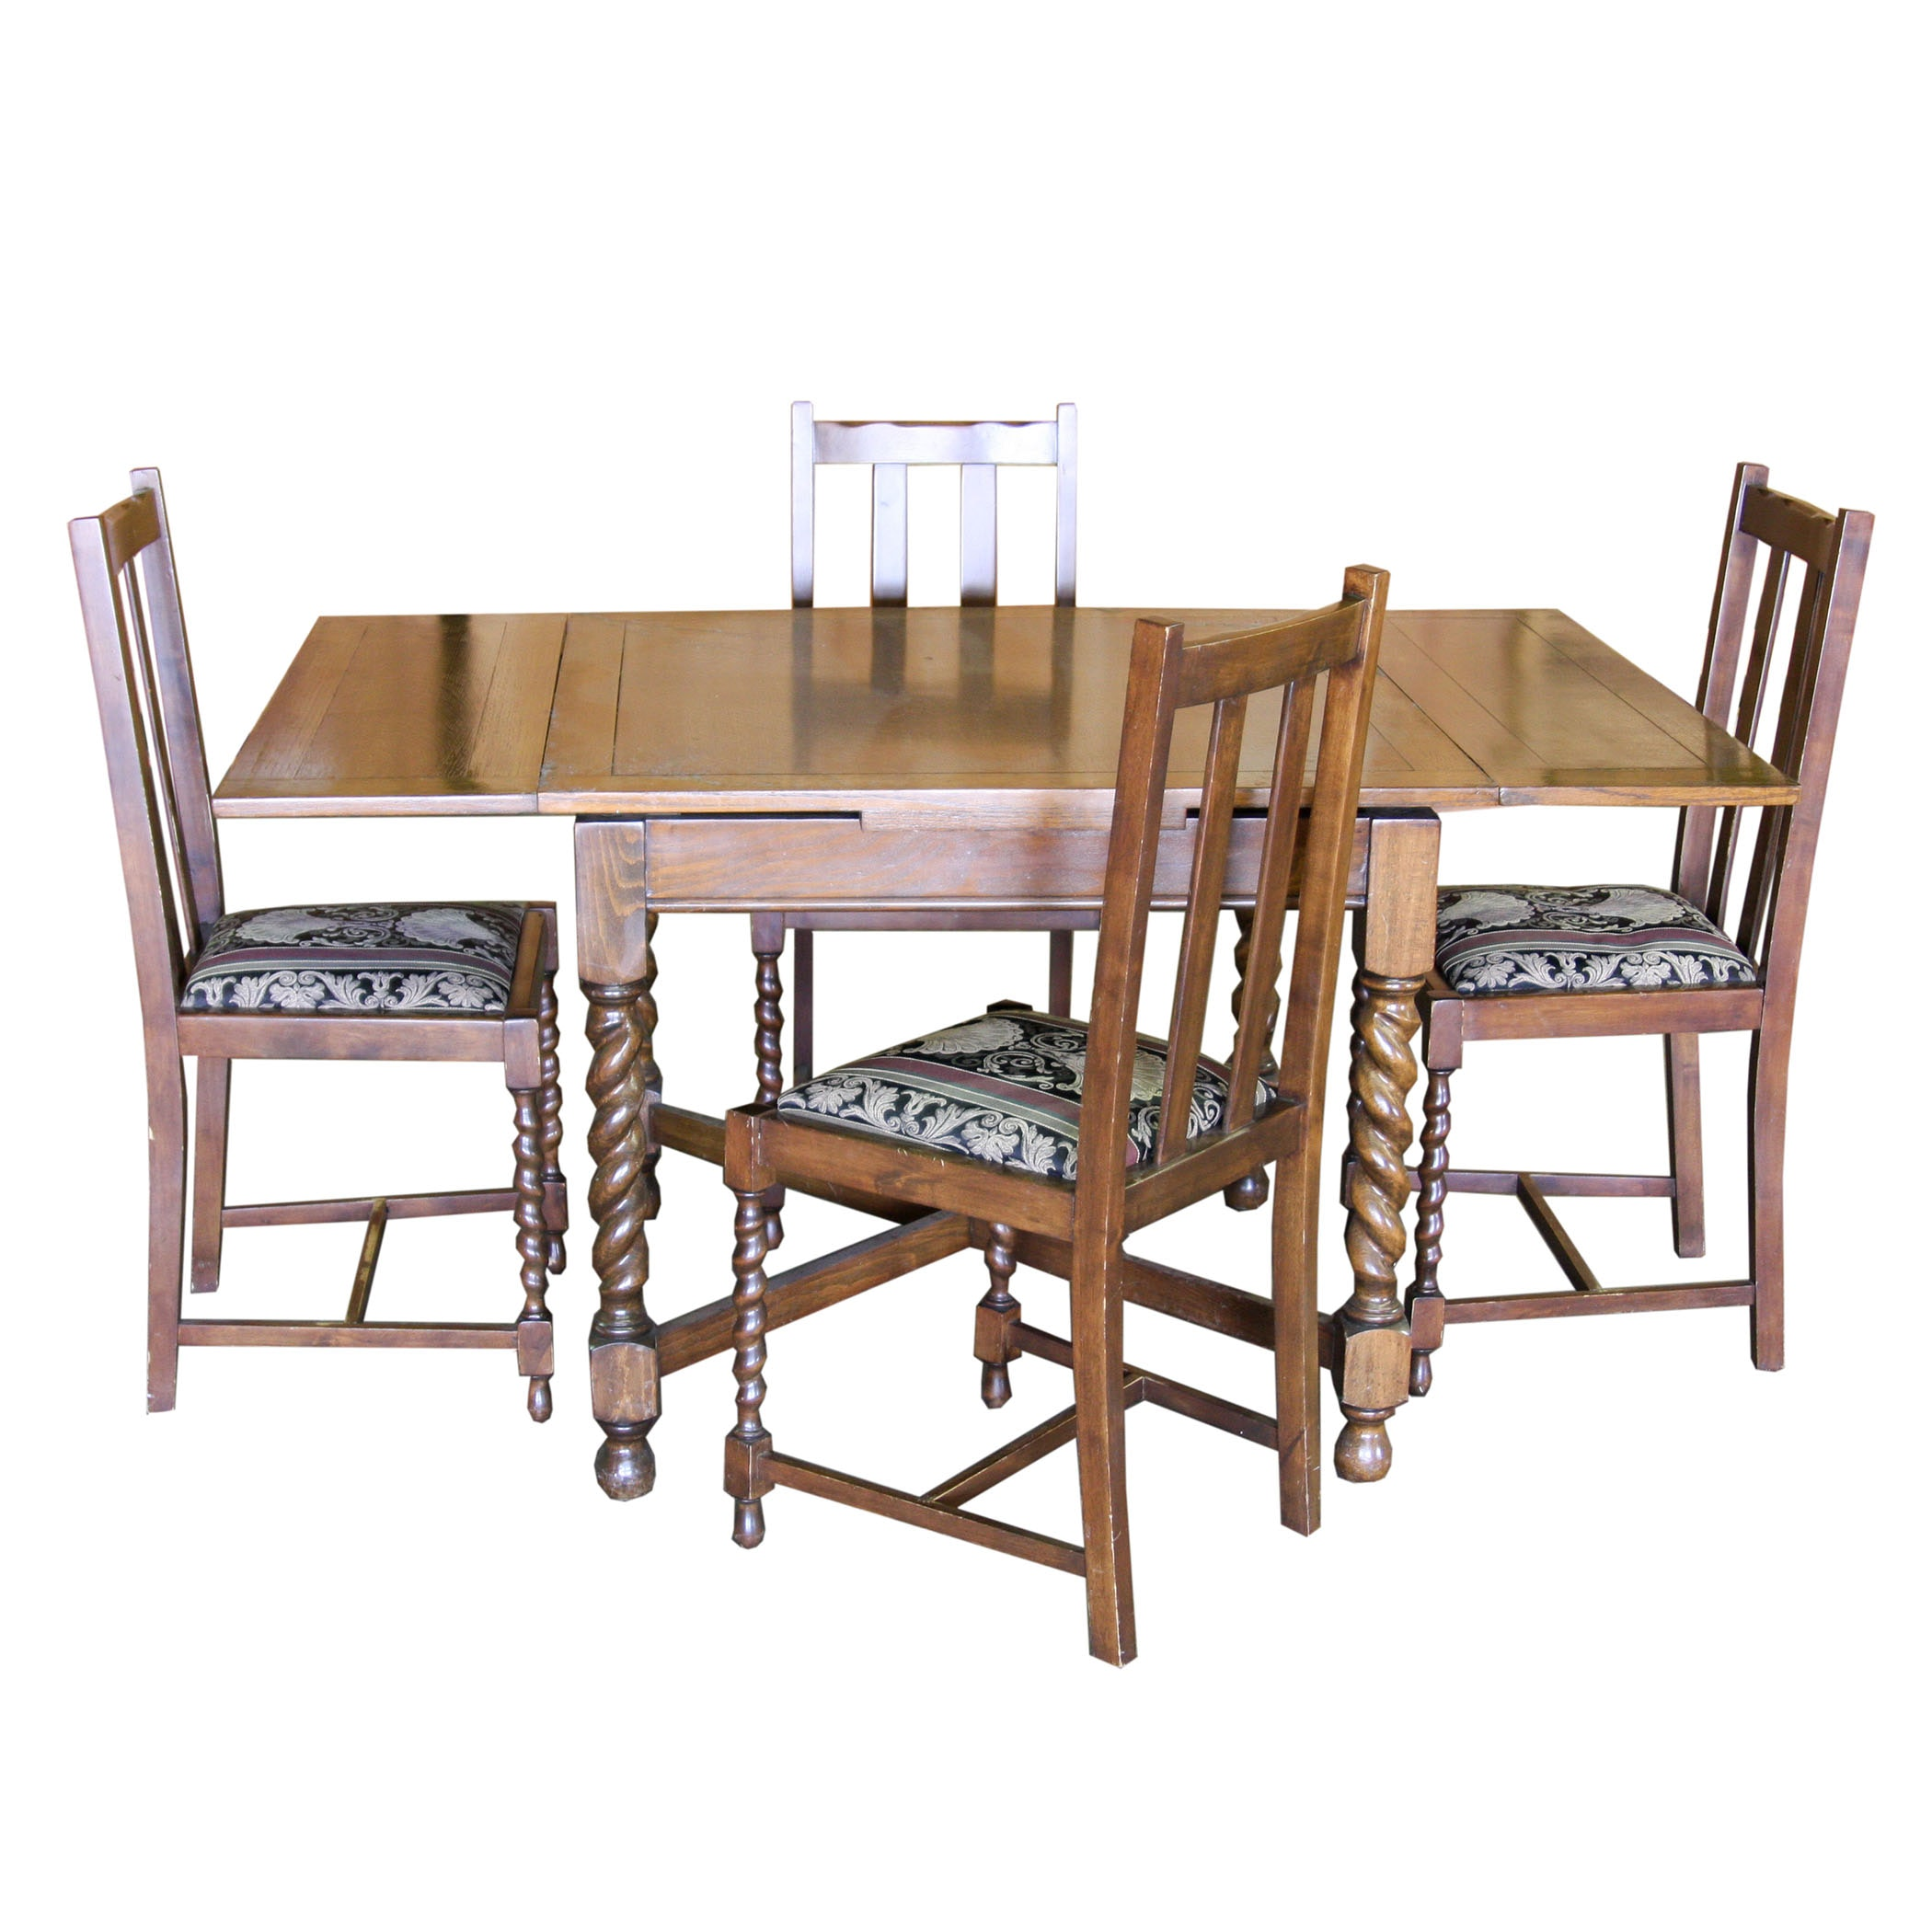 Dining Set With Barley Twist Legs